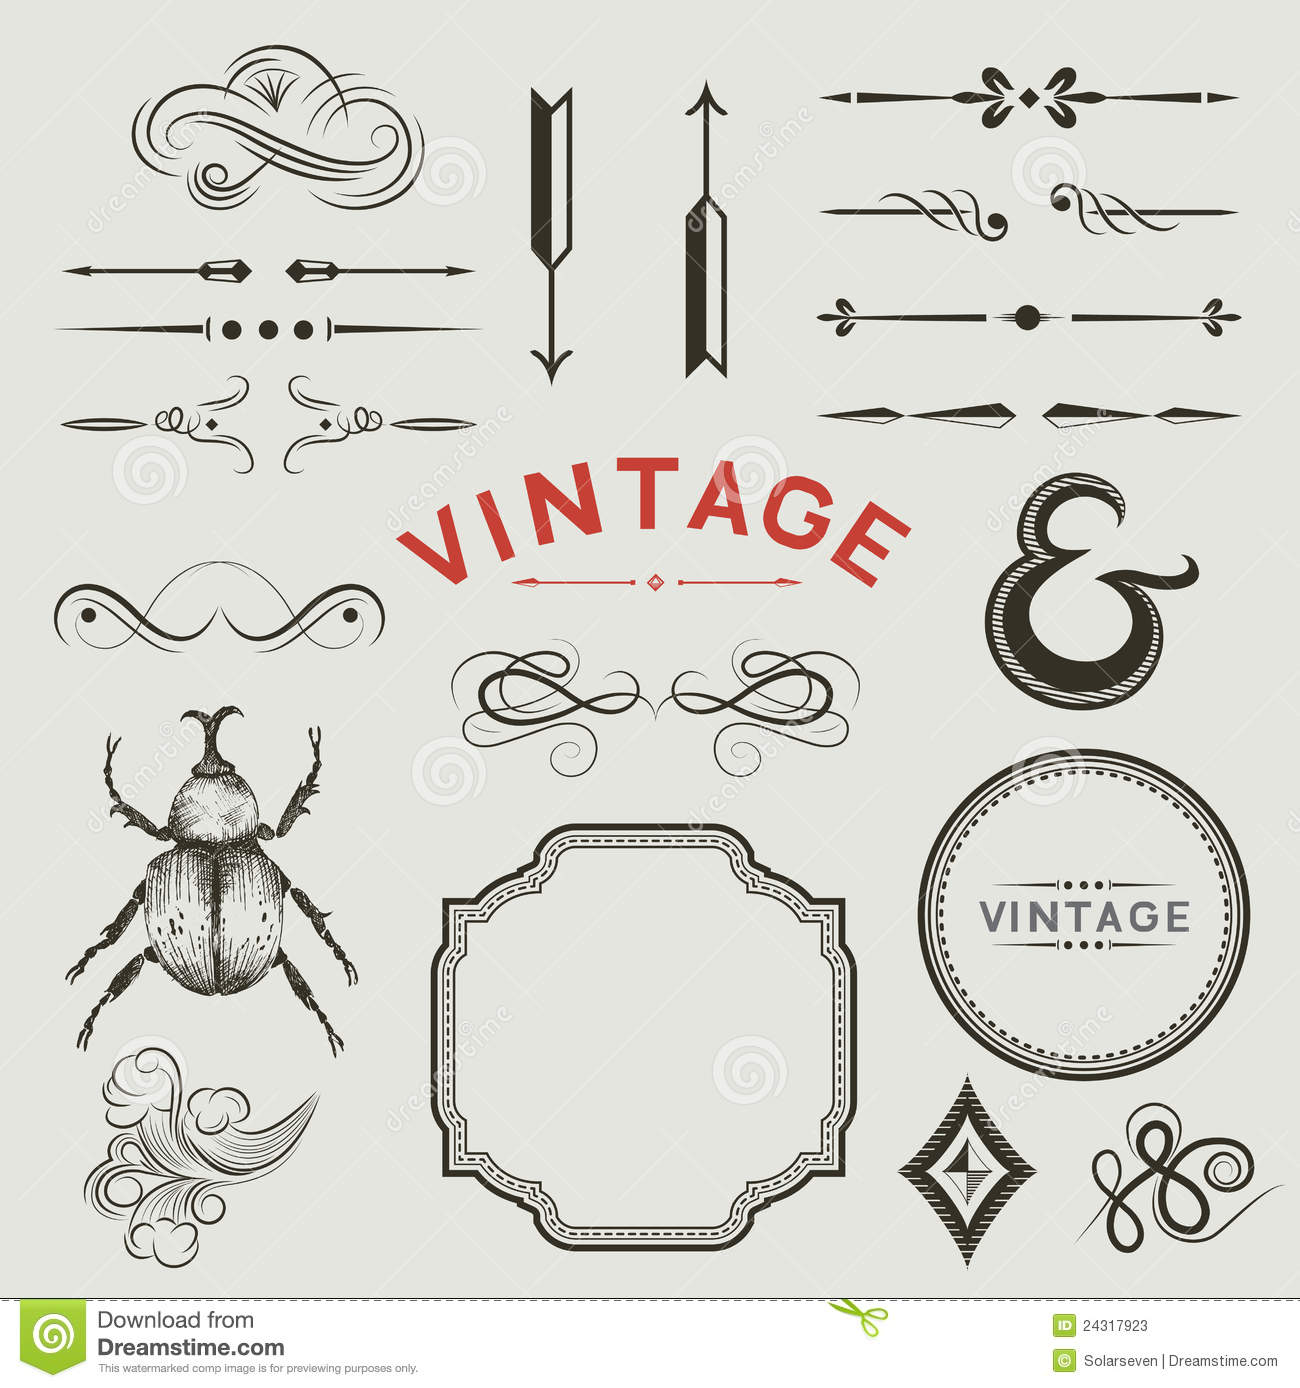 Vector Vintage Lines Wiring Diagrams Circuit Using Incandescent And Capacitor Ledandlightcircuit Elements Stock Illustration Of Drawn 24317923 Rh Dreamstime Com Decorative Line Design